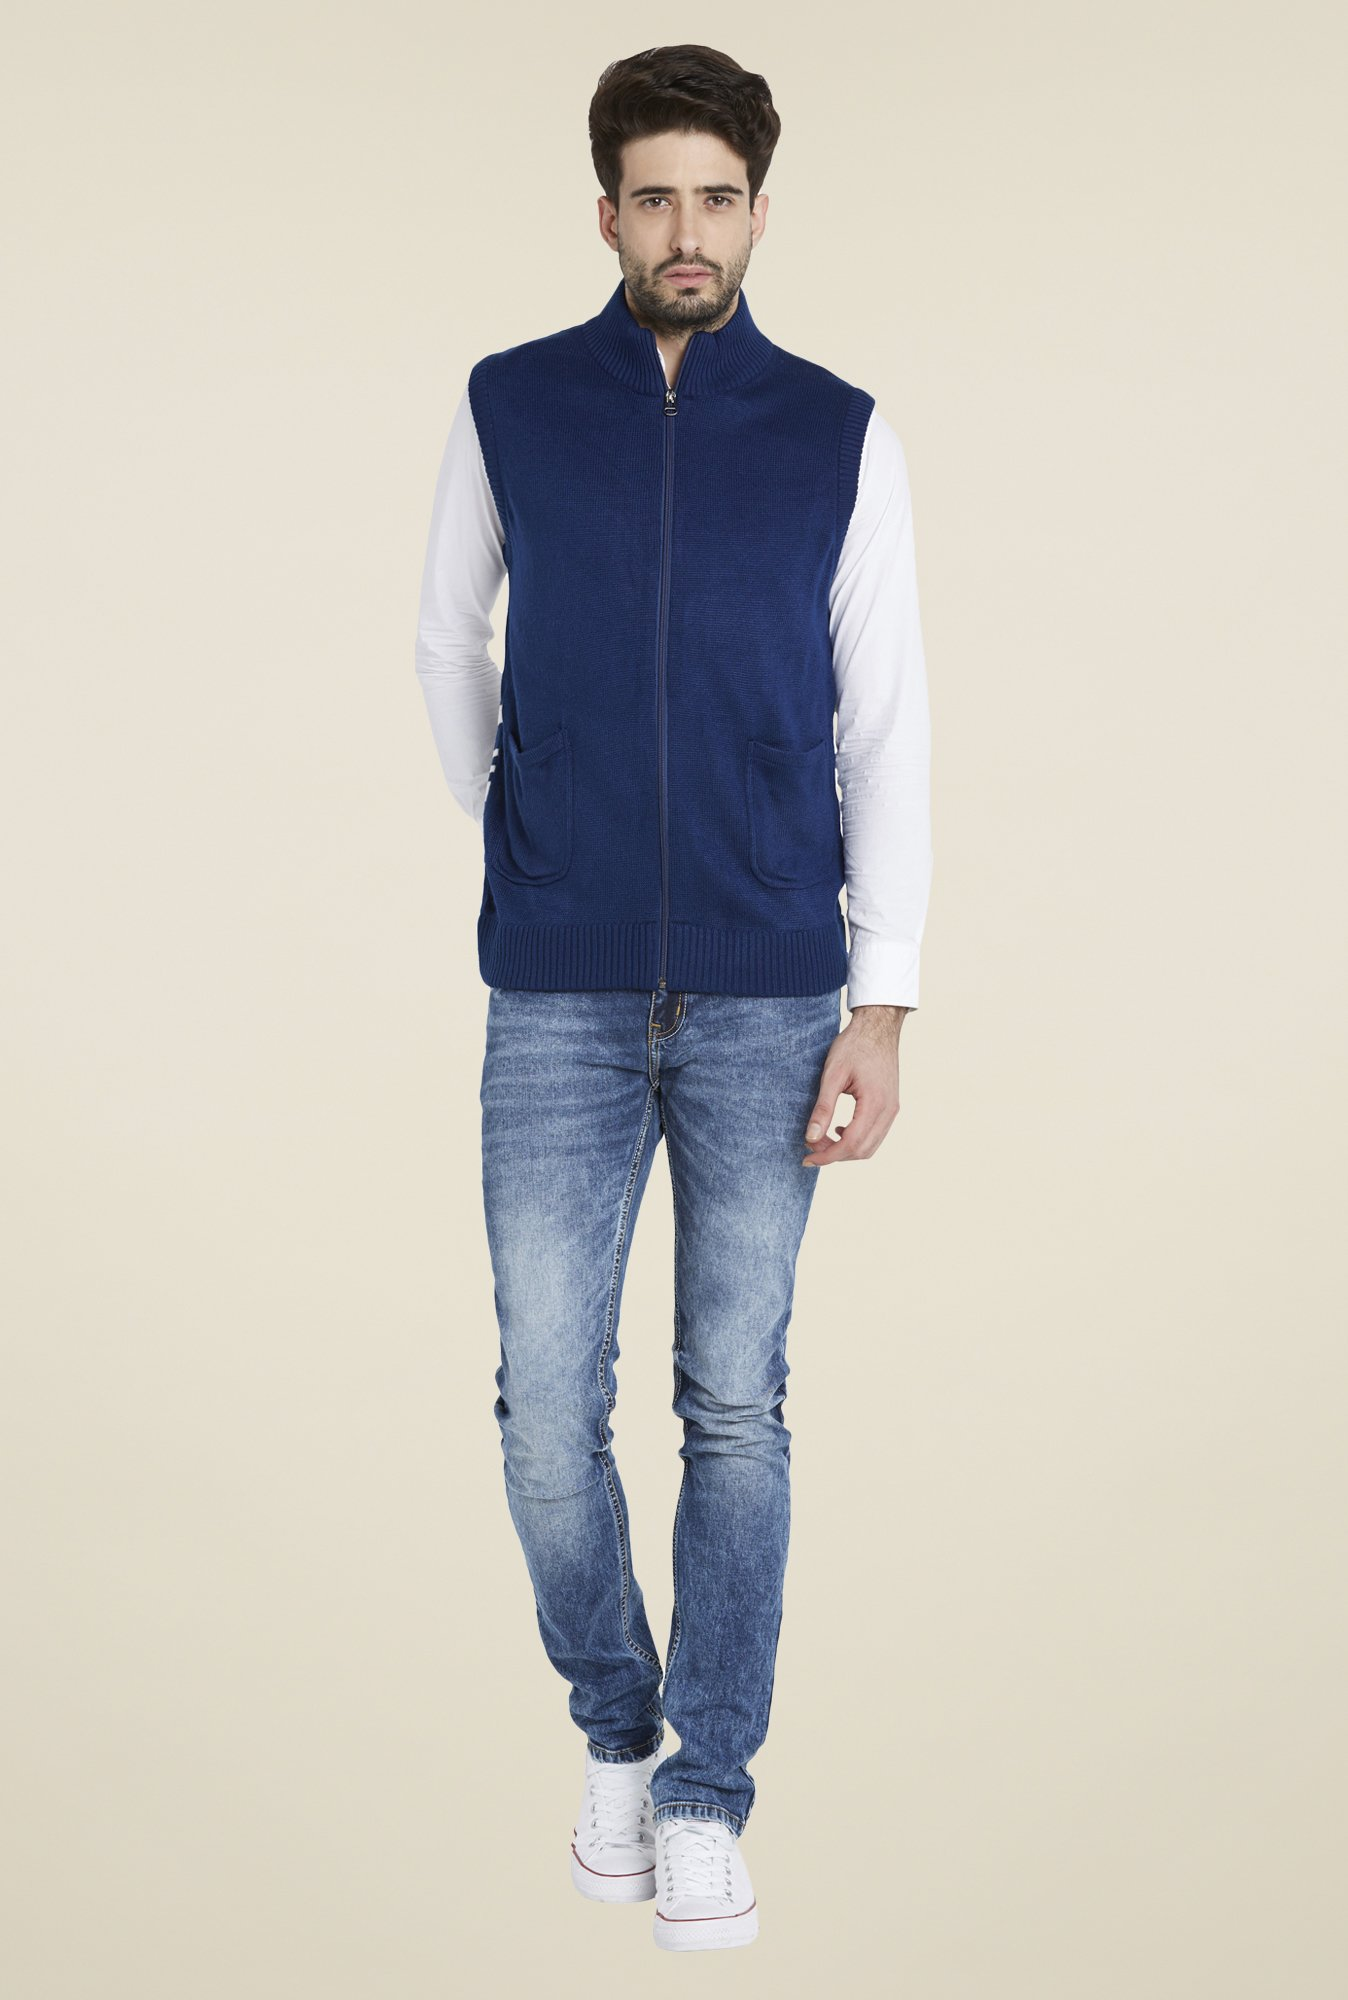 Globus Blue Solid Sleeveless Jacket